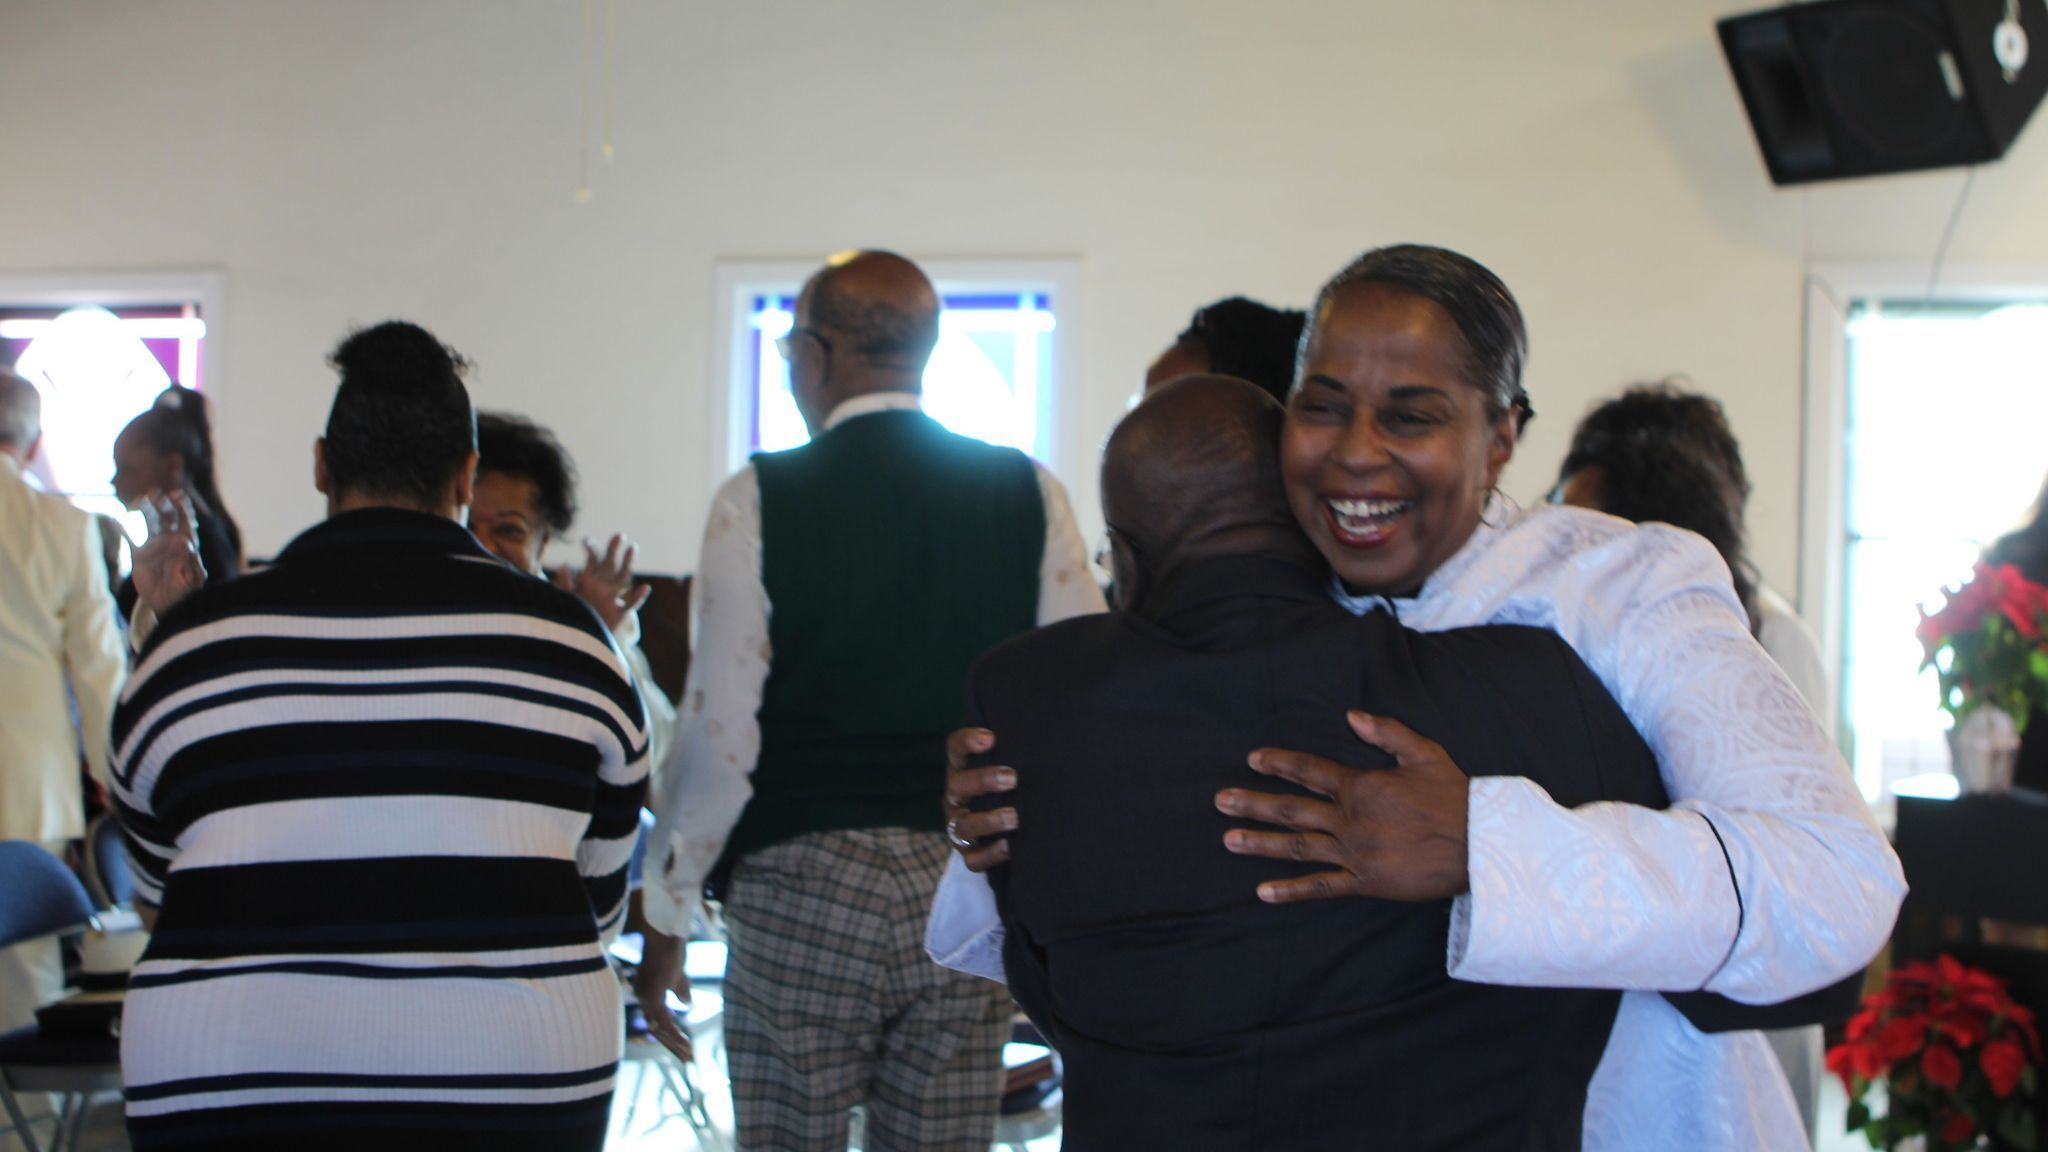 Rev. Denise Jackson greets congregants of Prince Chapel following her sermon on Sunday morning, Dec. 2.